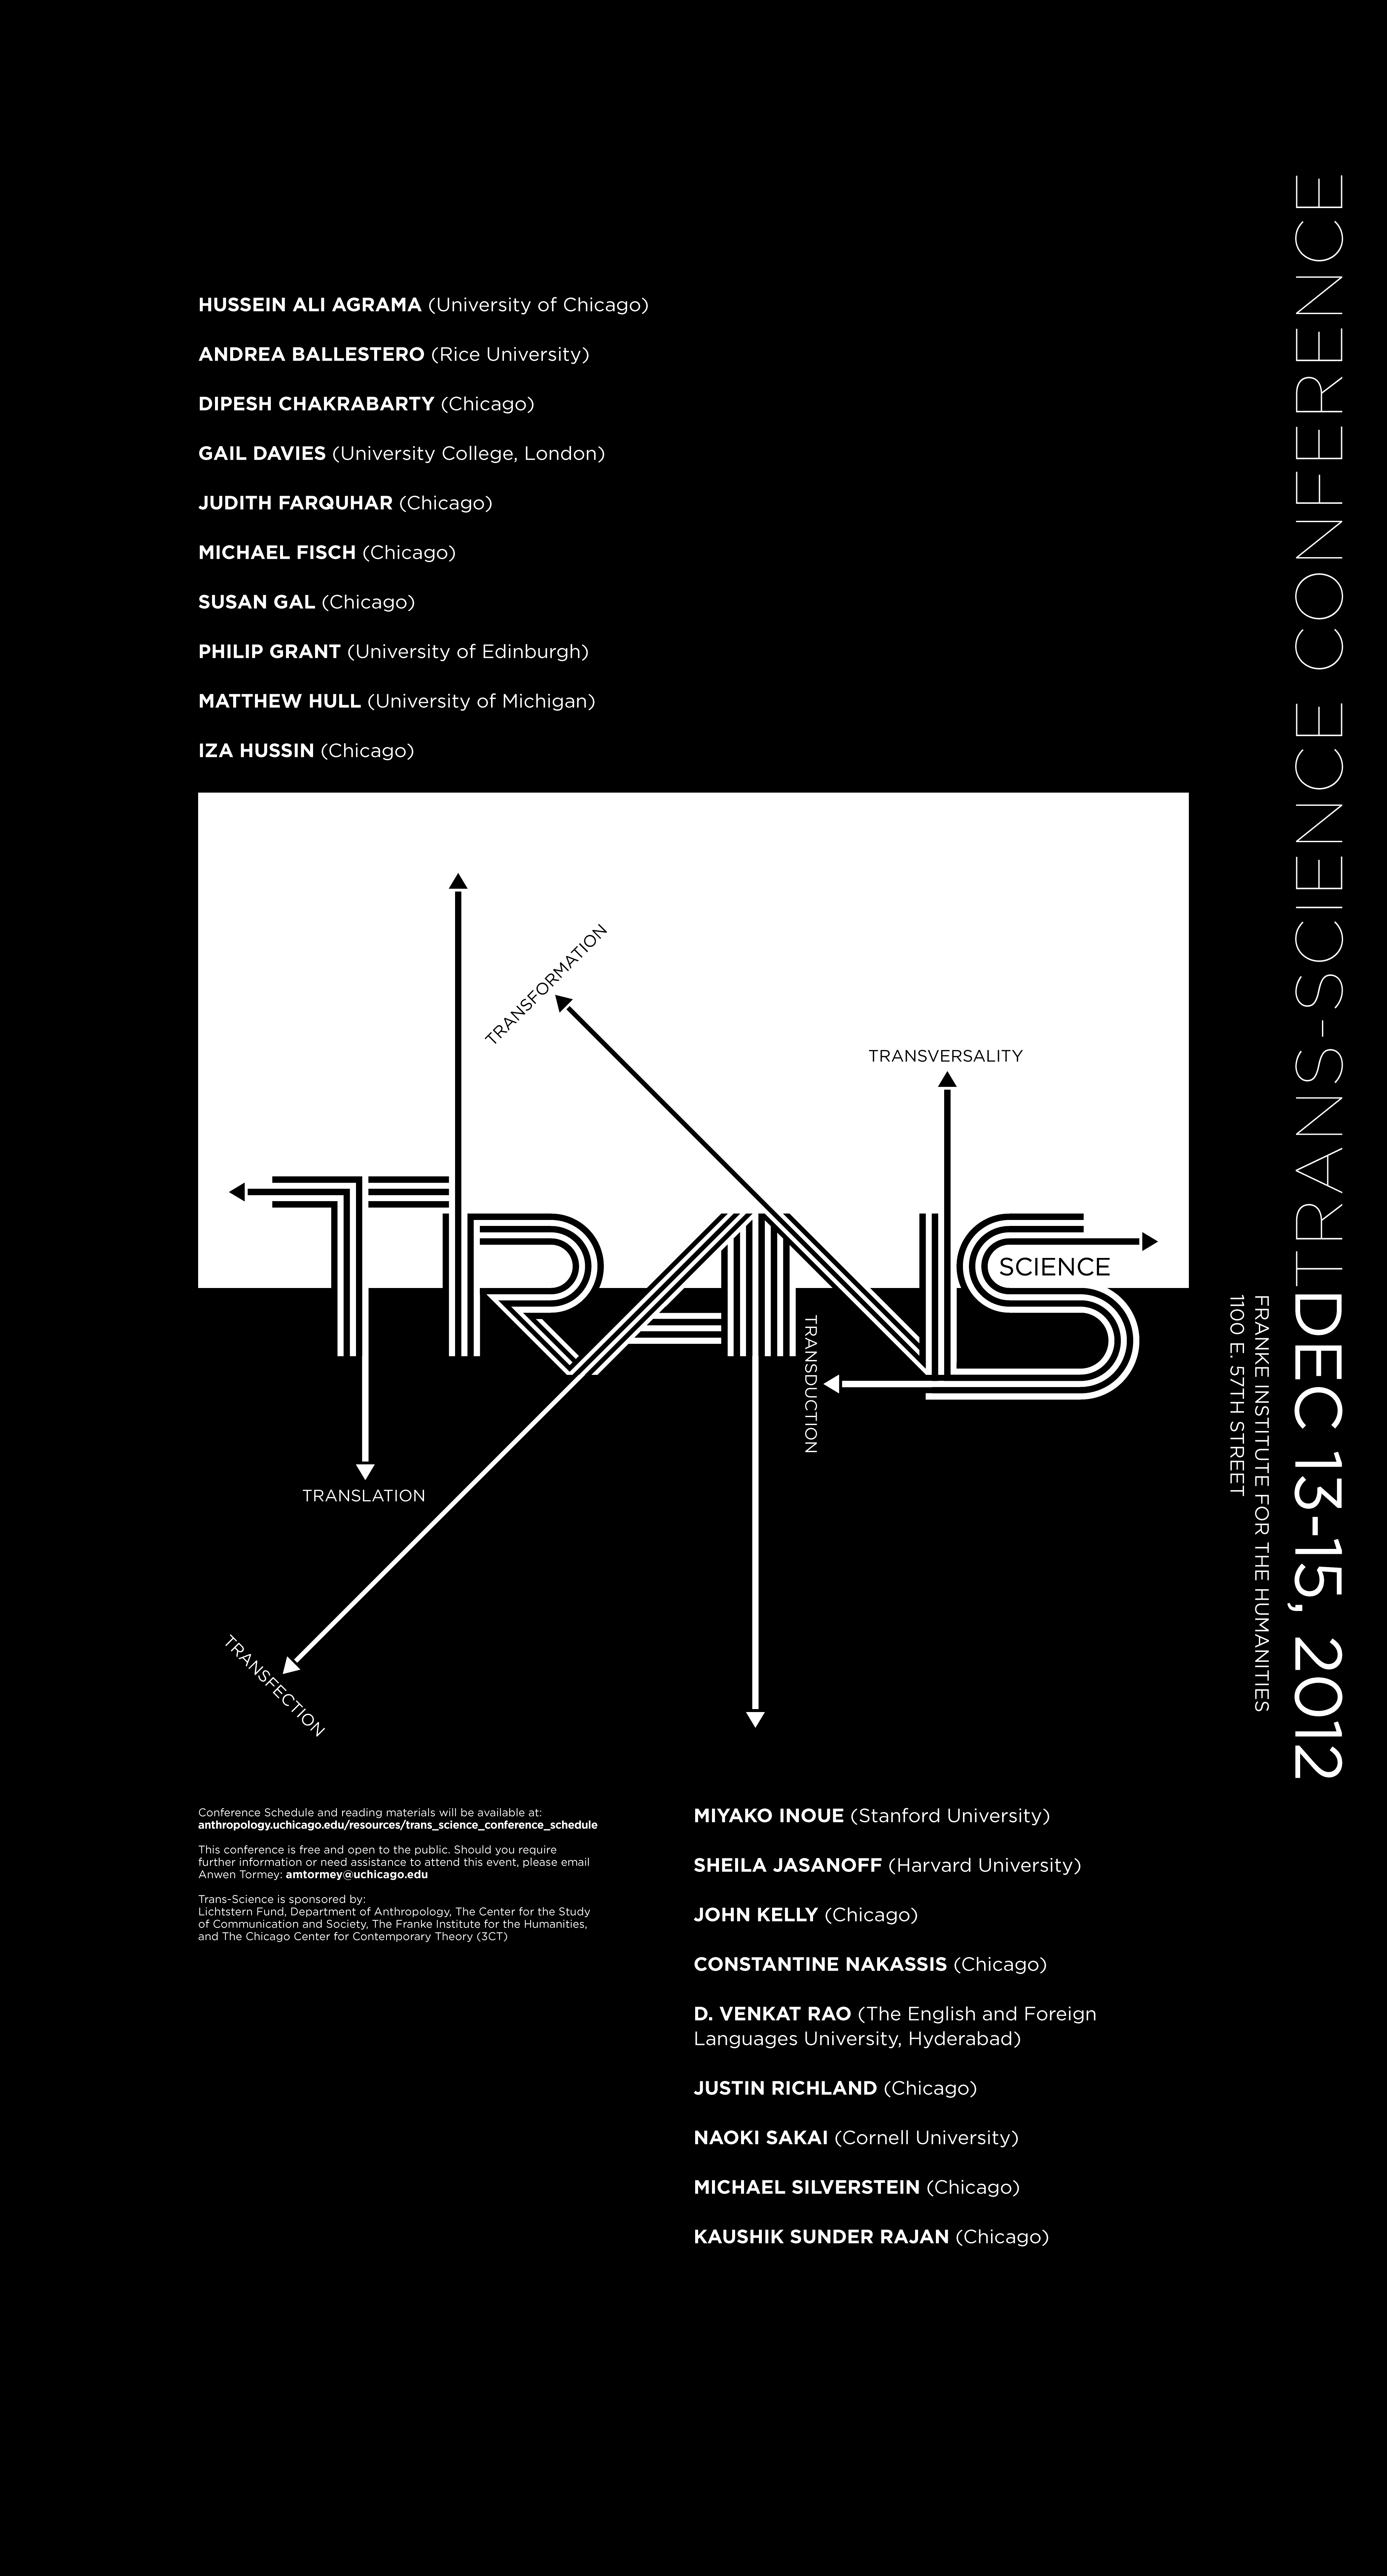 poster for the 2012 Trans-Science conference at the Franke Institute for the Humanities